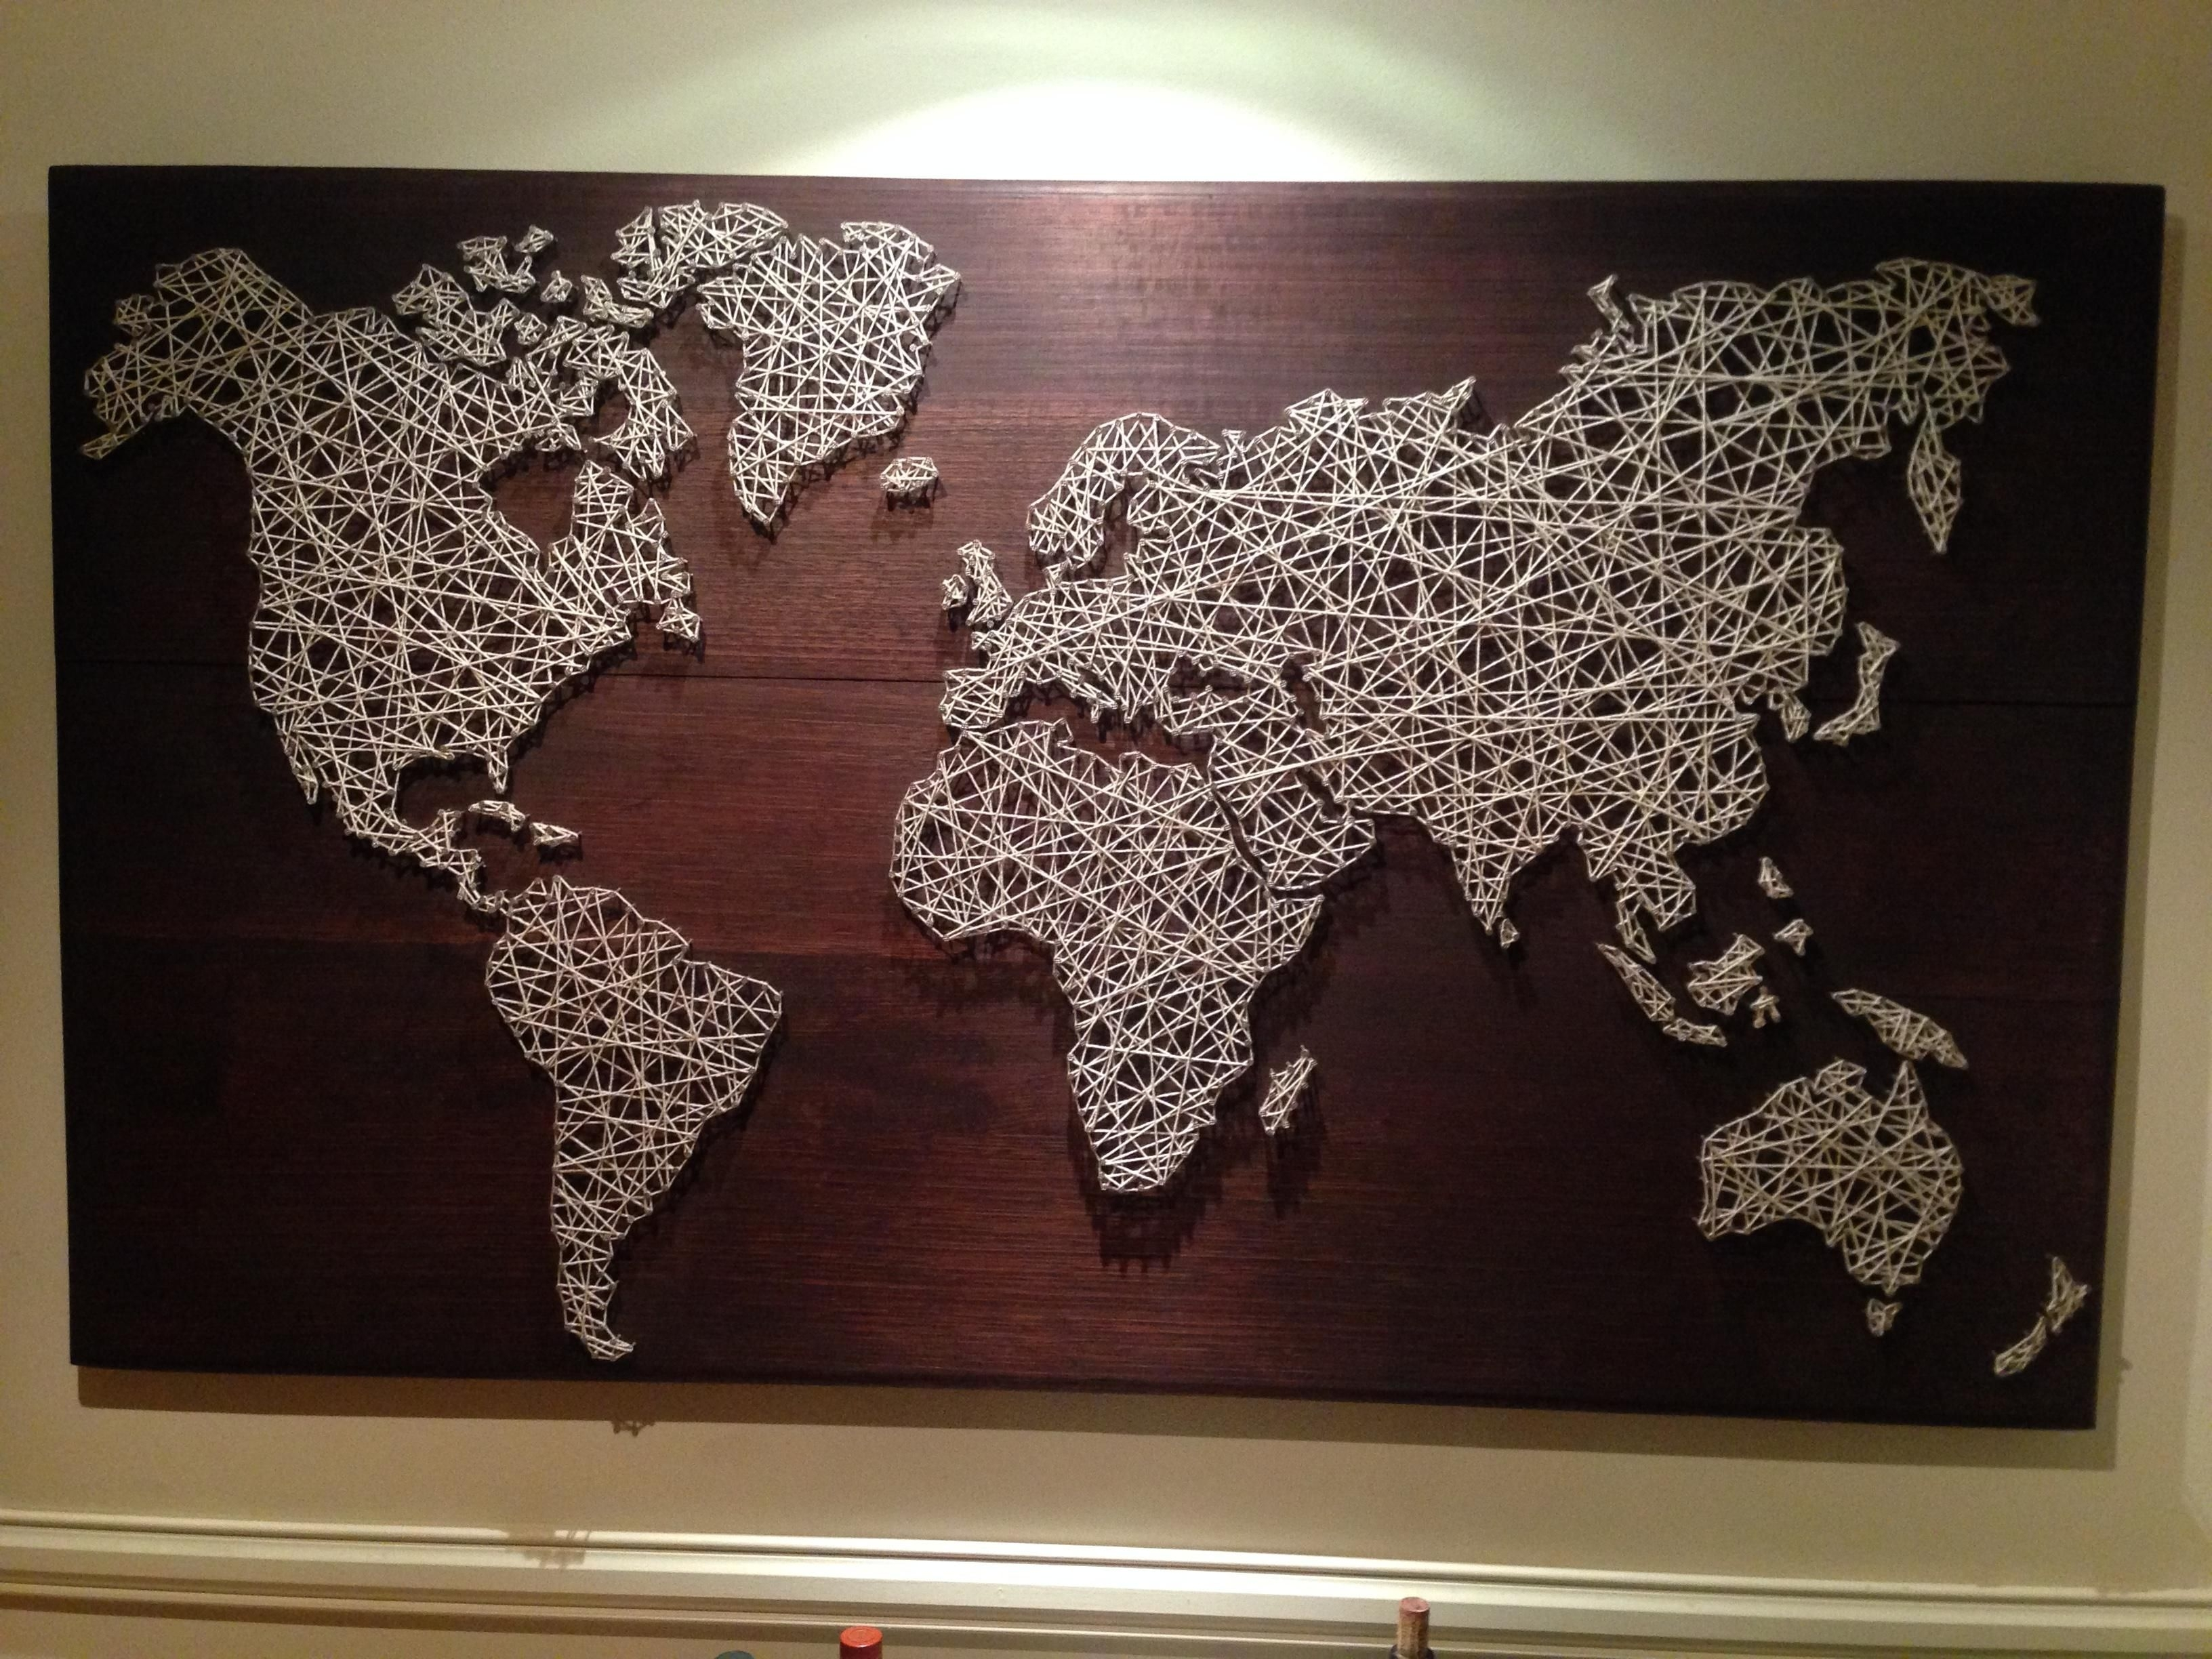 World String Art | String Art, Twine And Cotton Throughout String Map Wall Art (View 20 of 20)